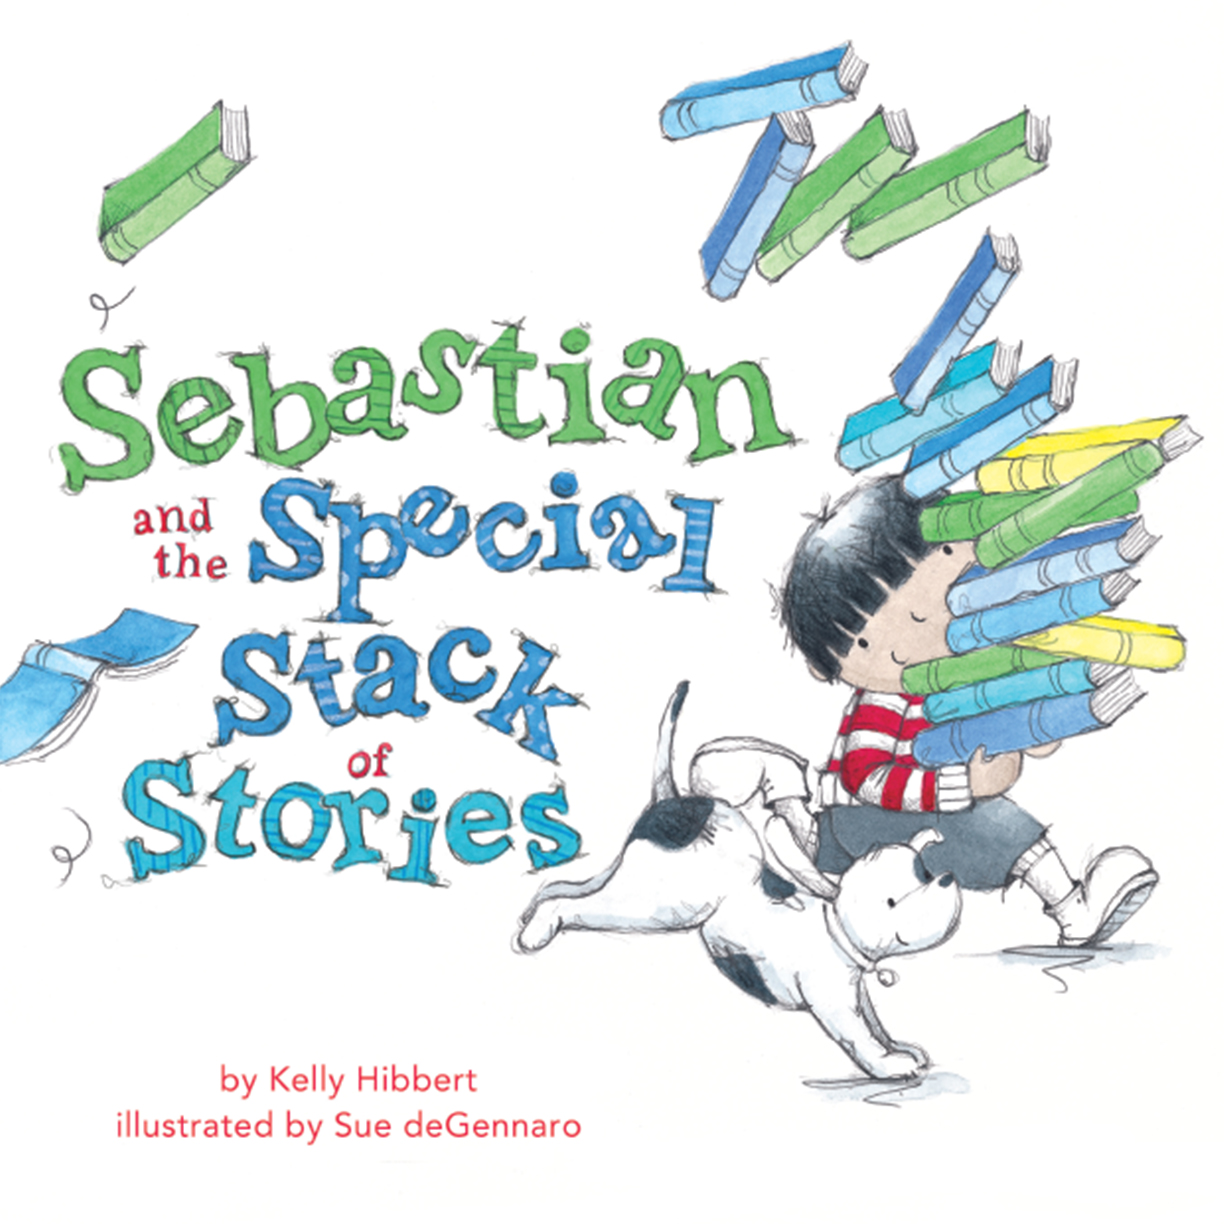 Sebastian and the Special Stack of Stories - Kelly Hibbert Sue deGennaro HarperCollins